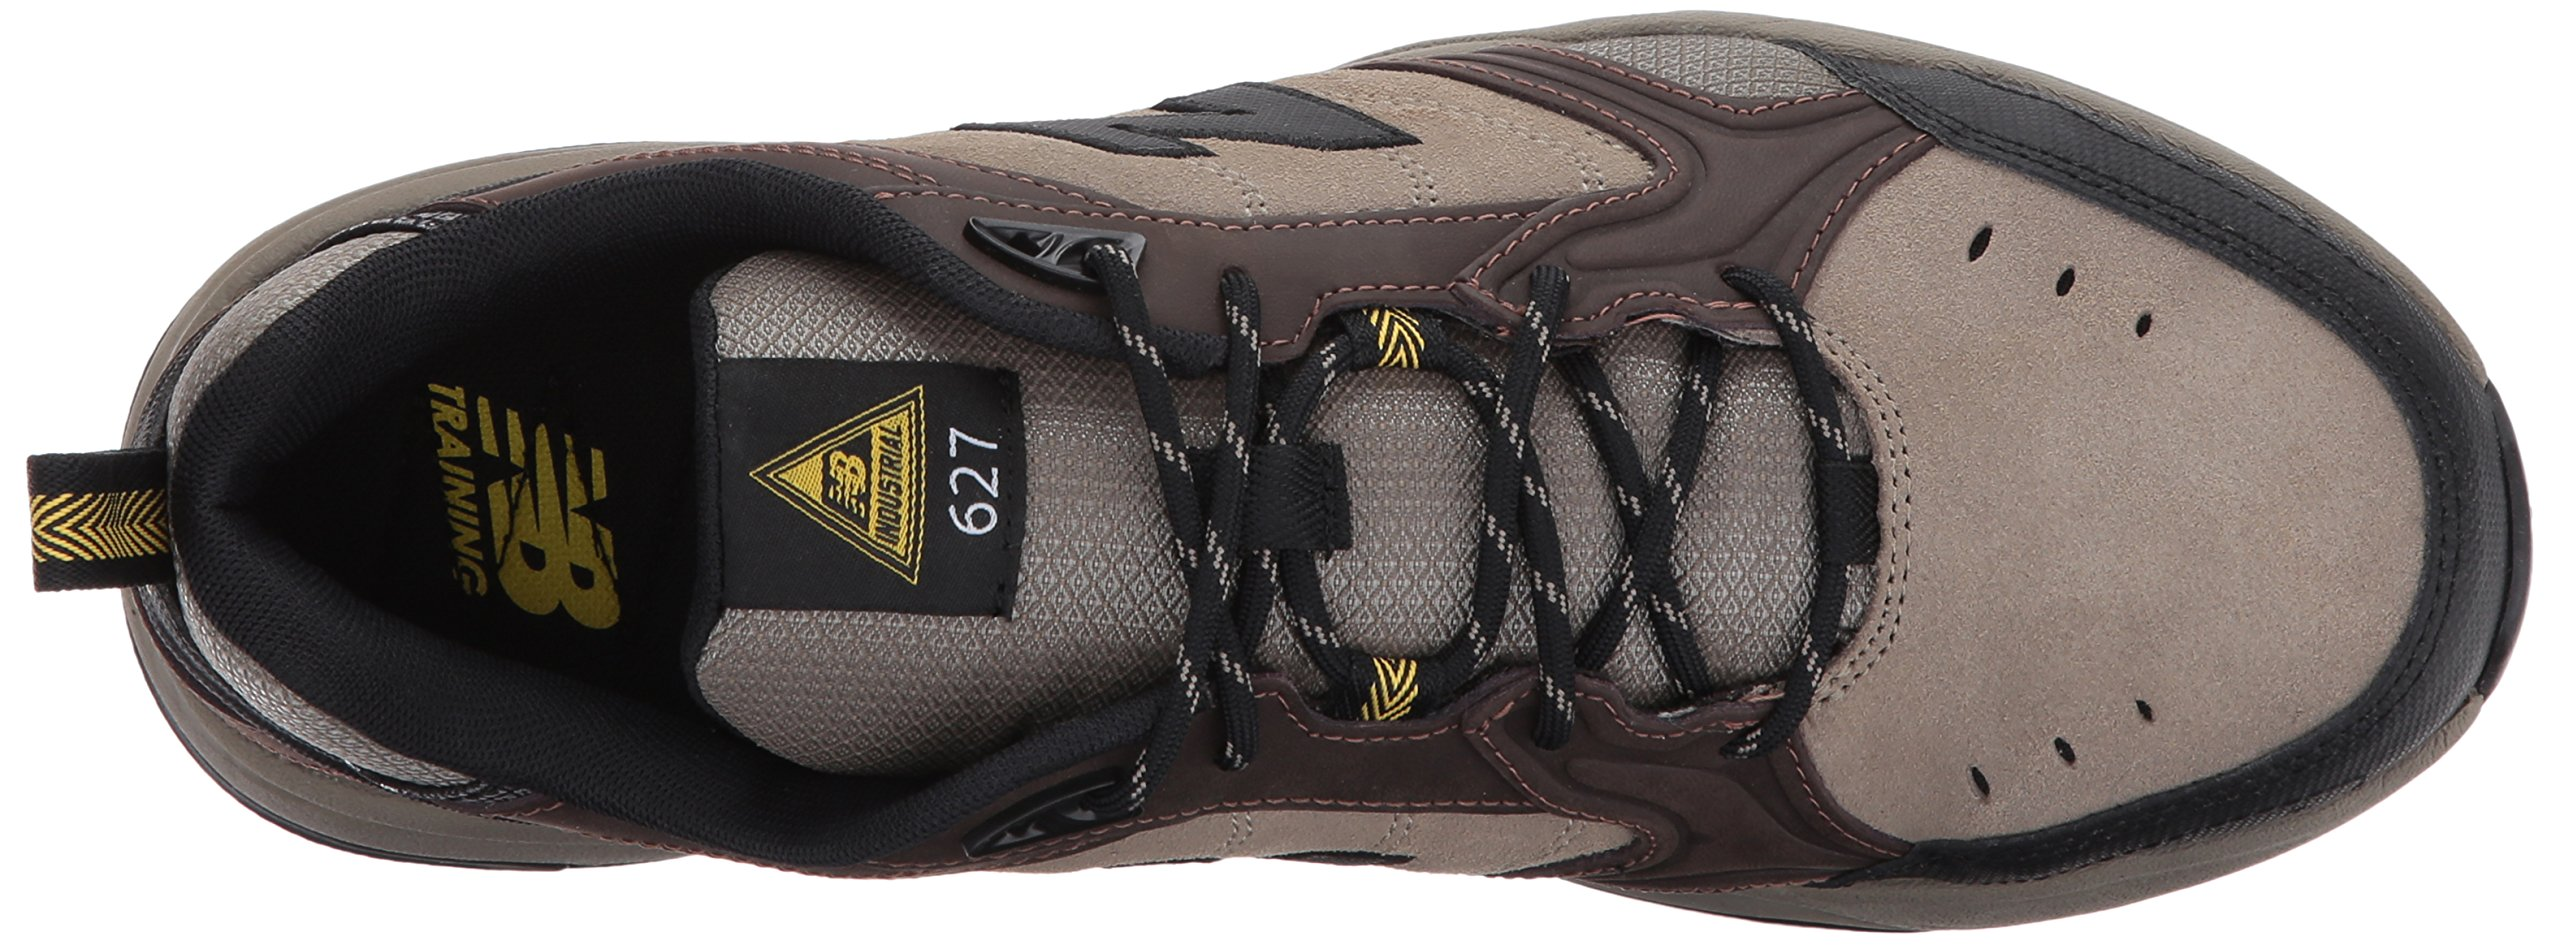 New Balance Men's MID627 Steel-Toe Work Shoe,Brown,18 4E US by New Balance (Image #8)